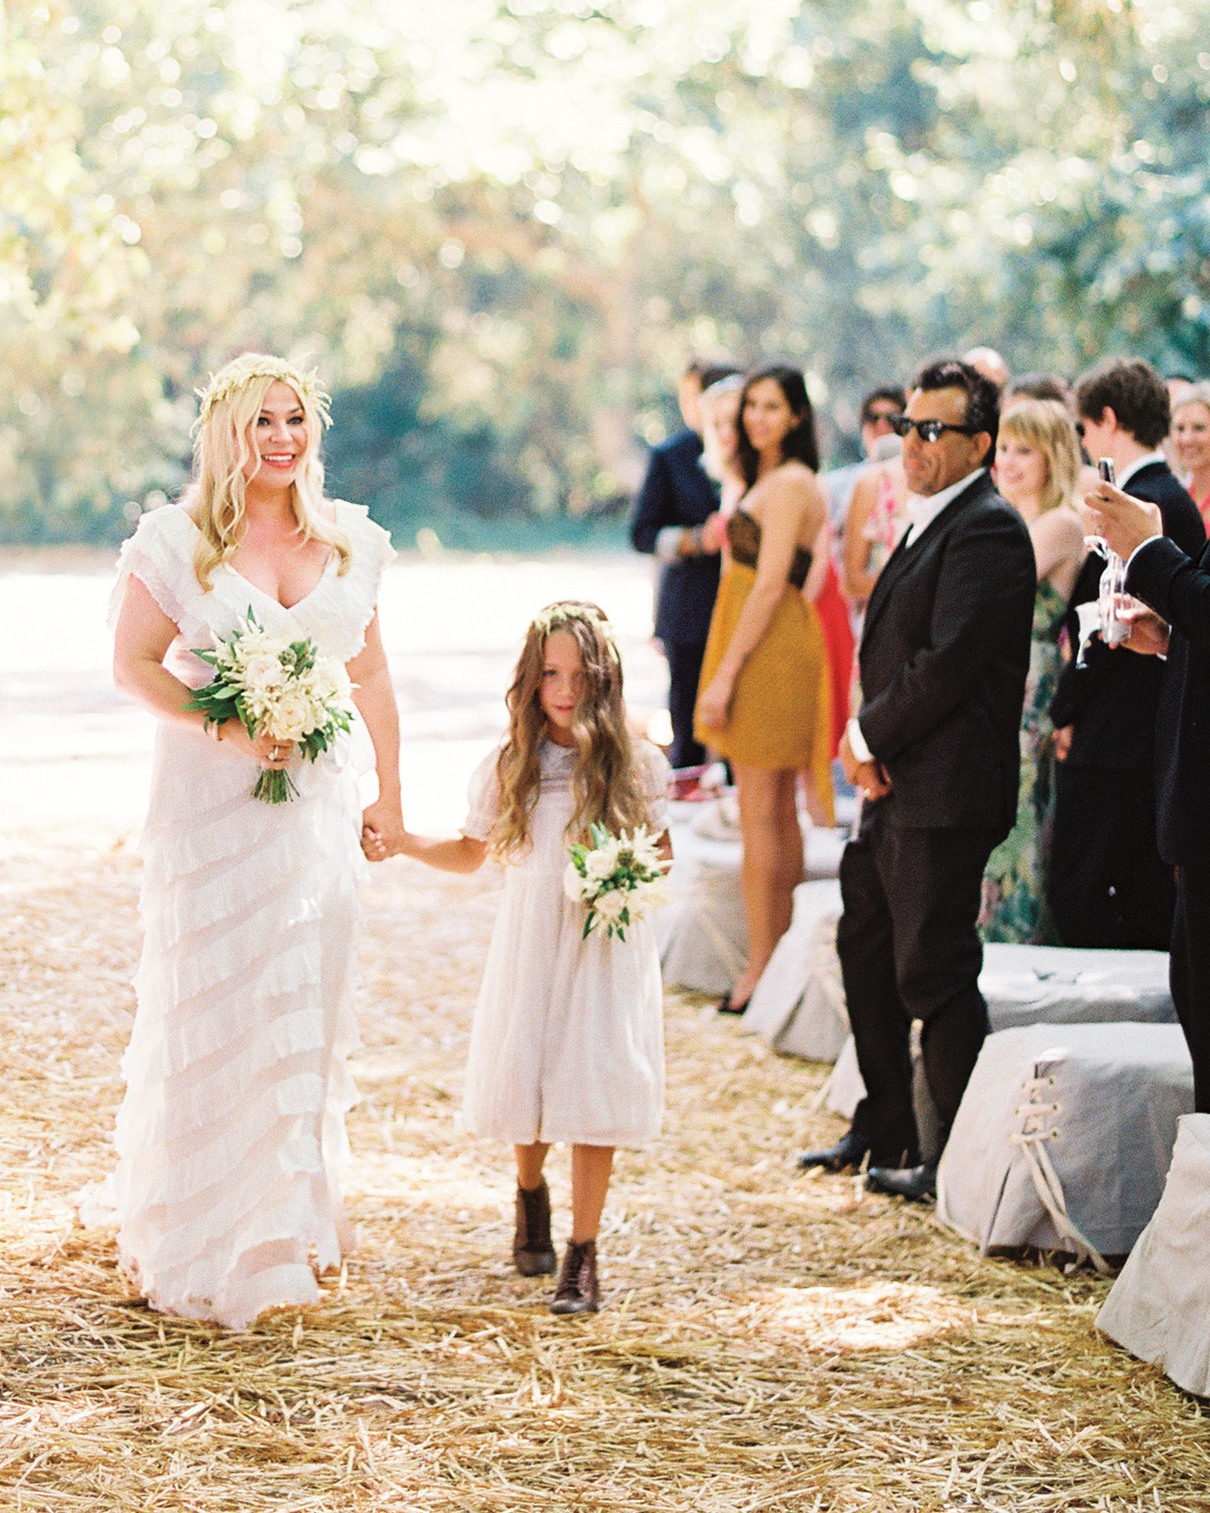 Flower Girl Processional